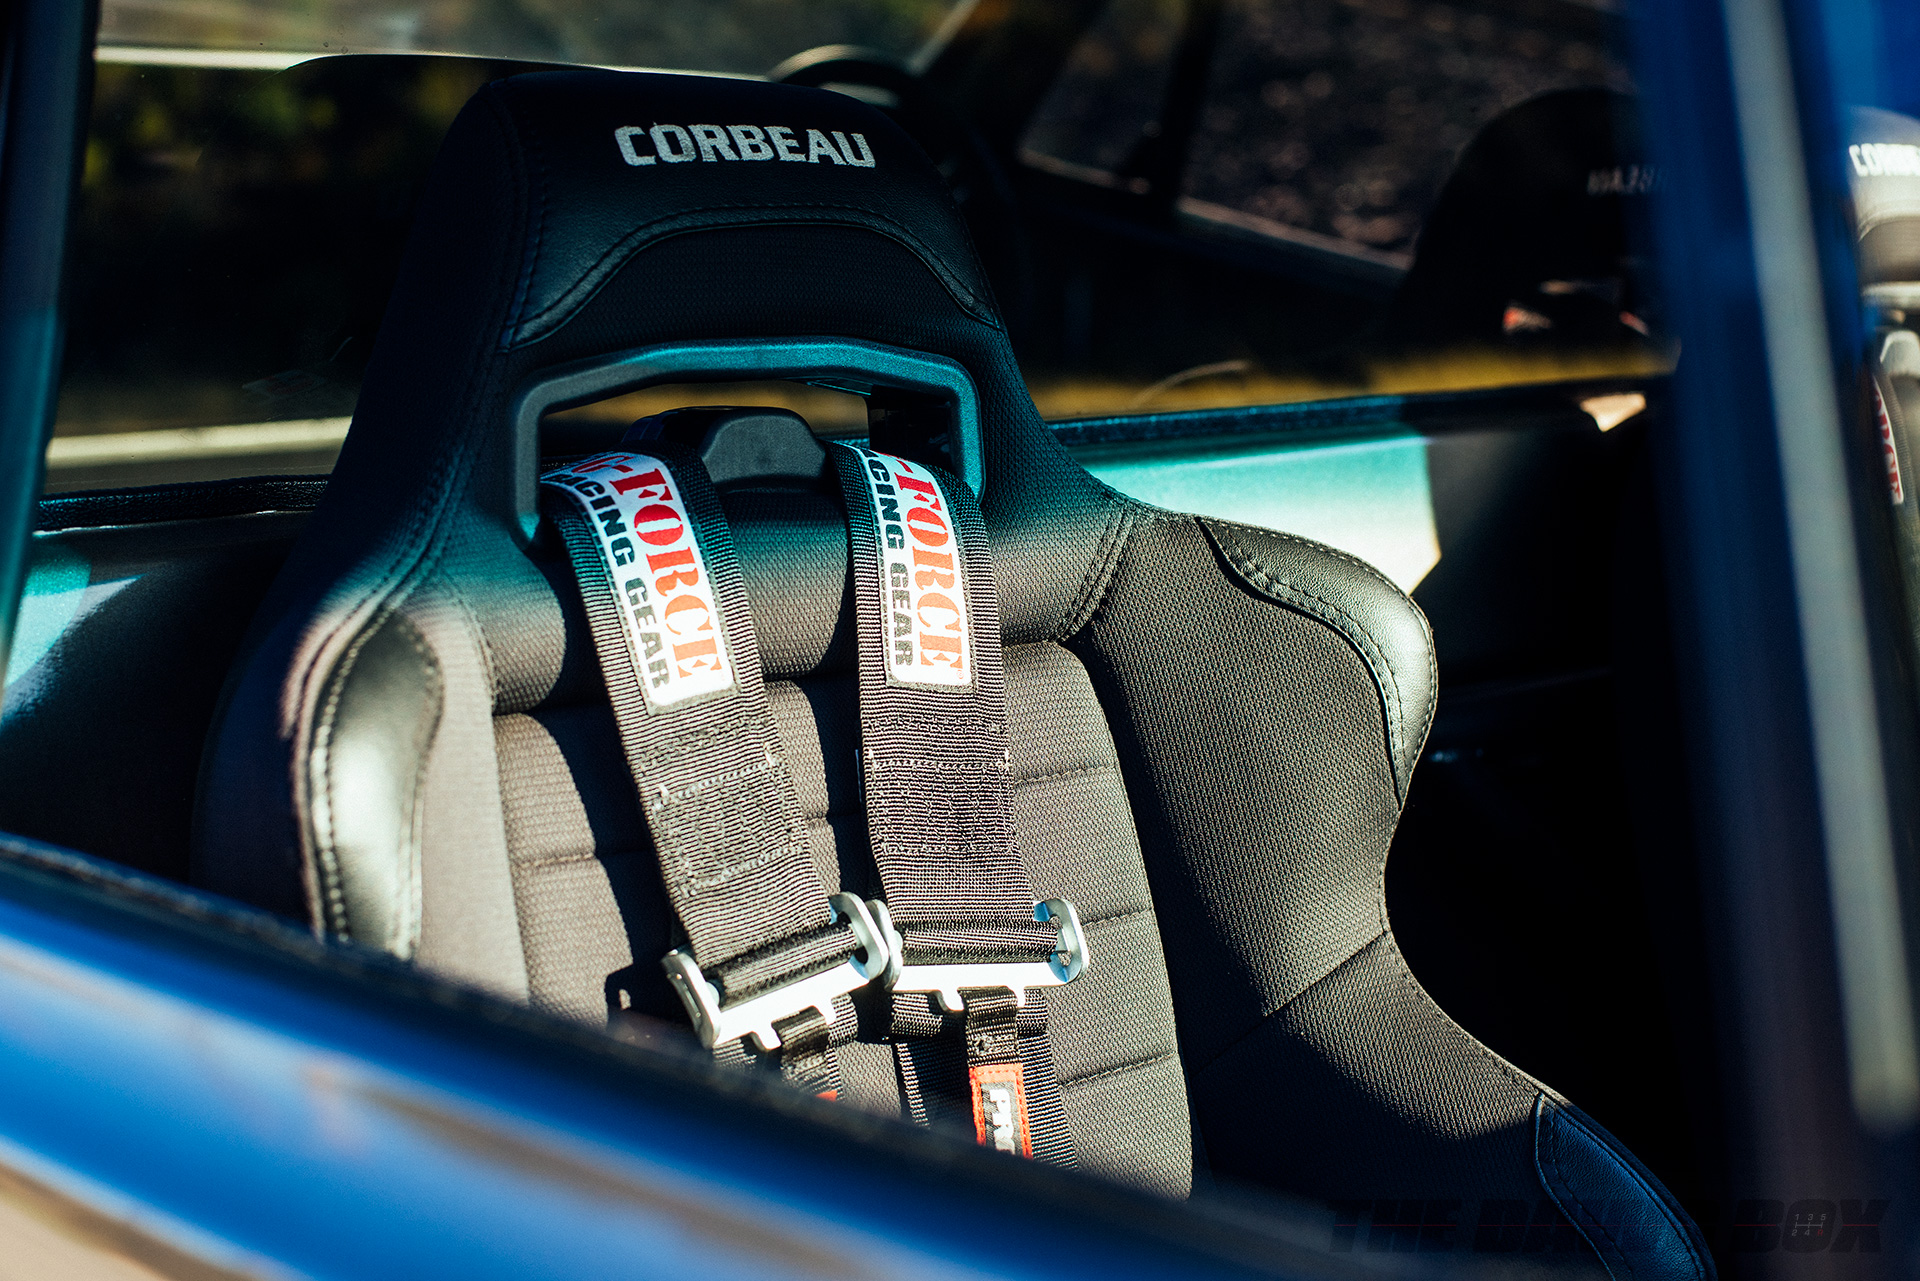 Third Time's The Charm: Dustin Reed's 1972 Chevy C10, Corbeau Seats with G-Force Harnesses